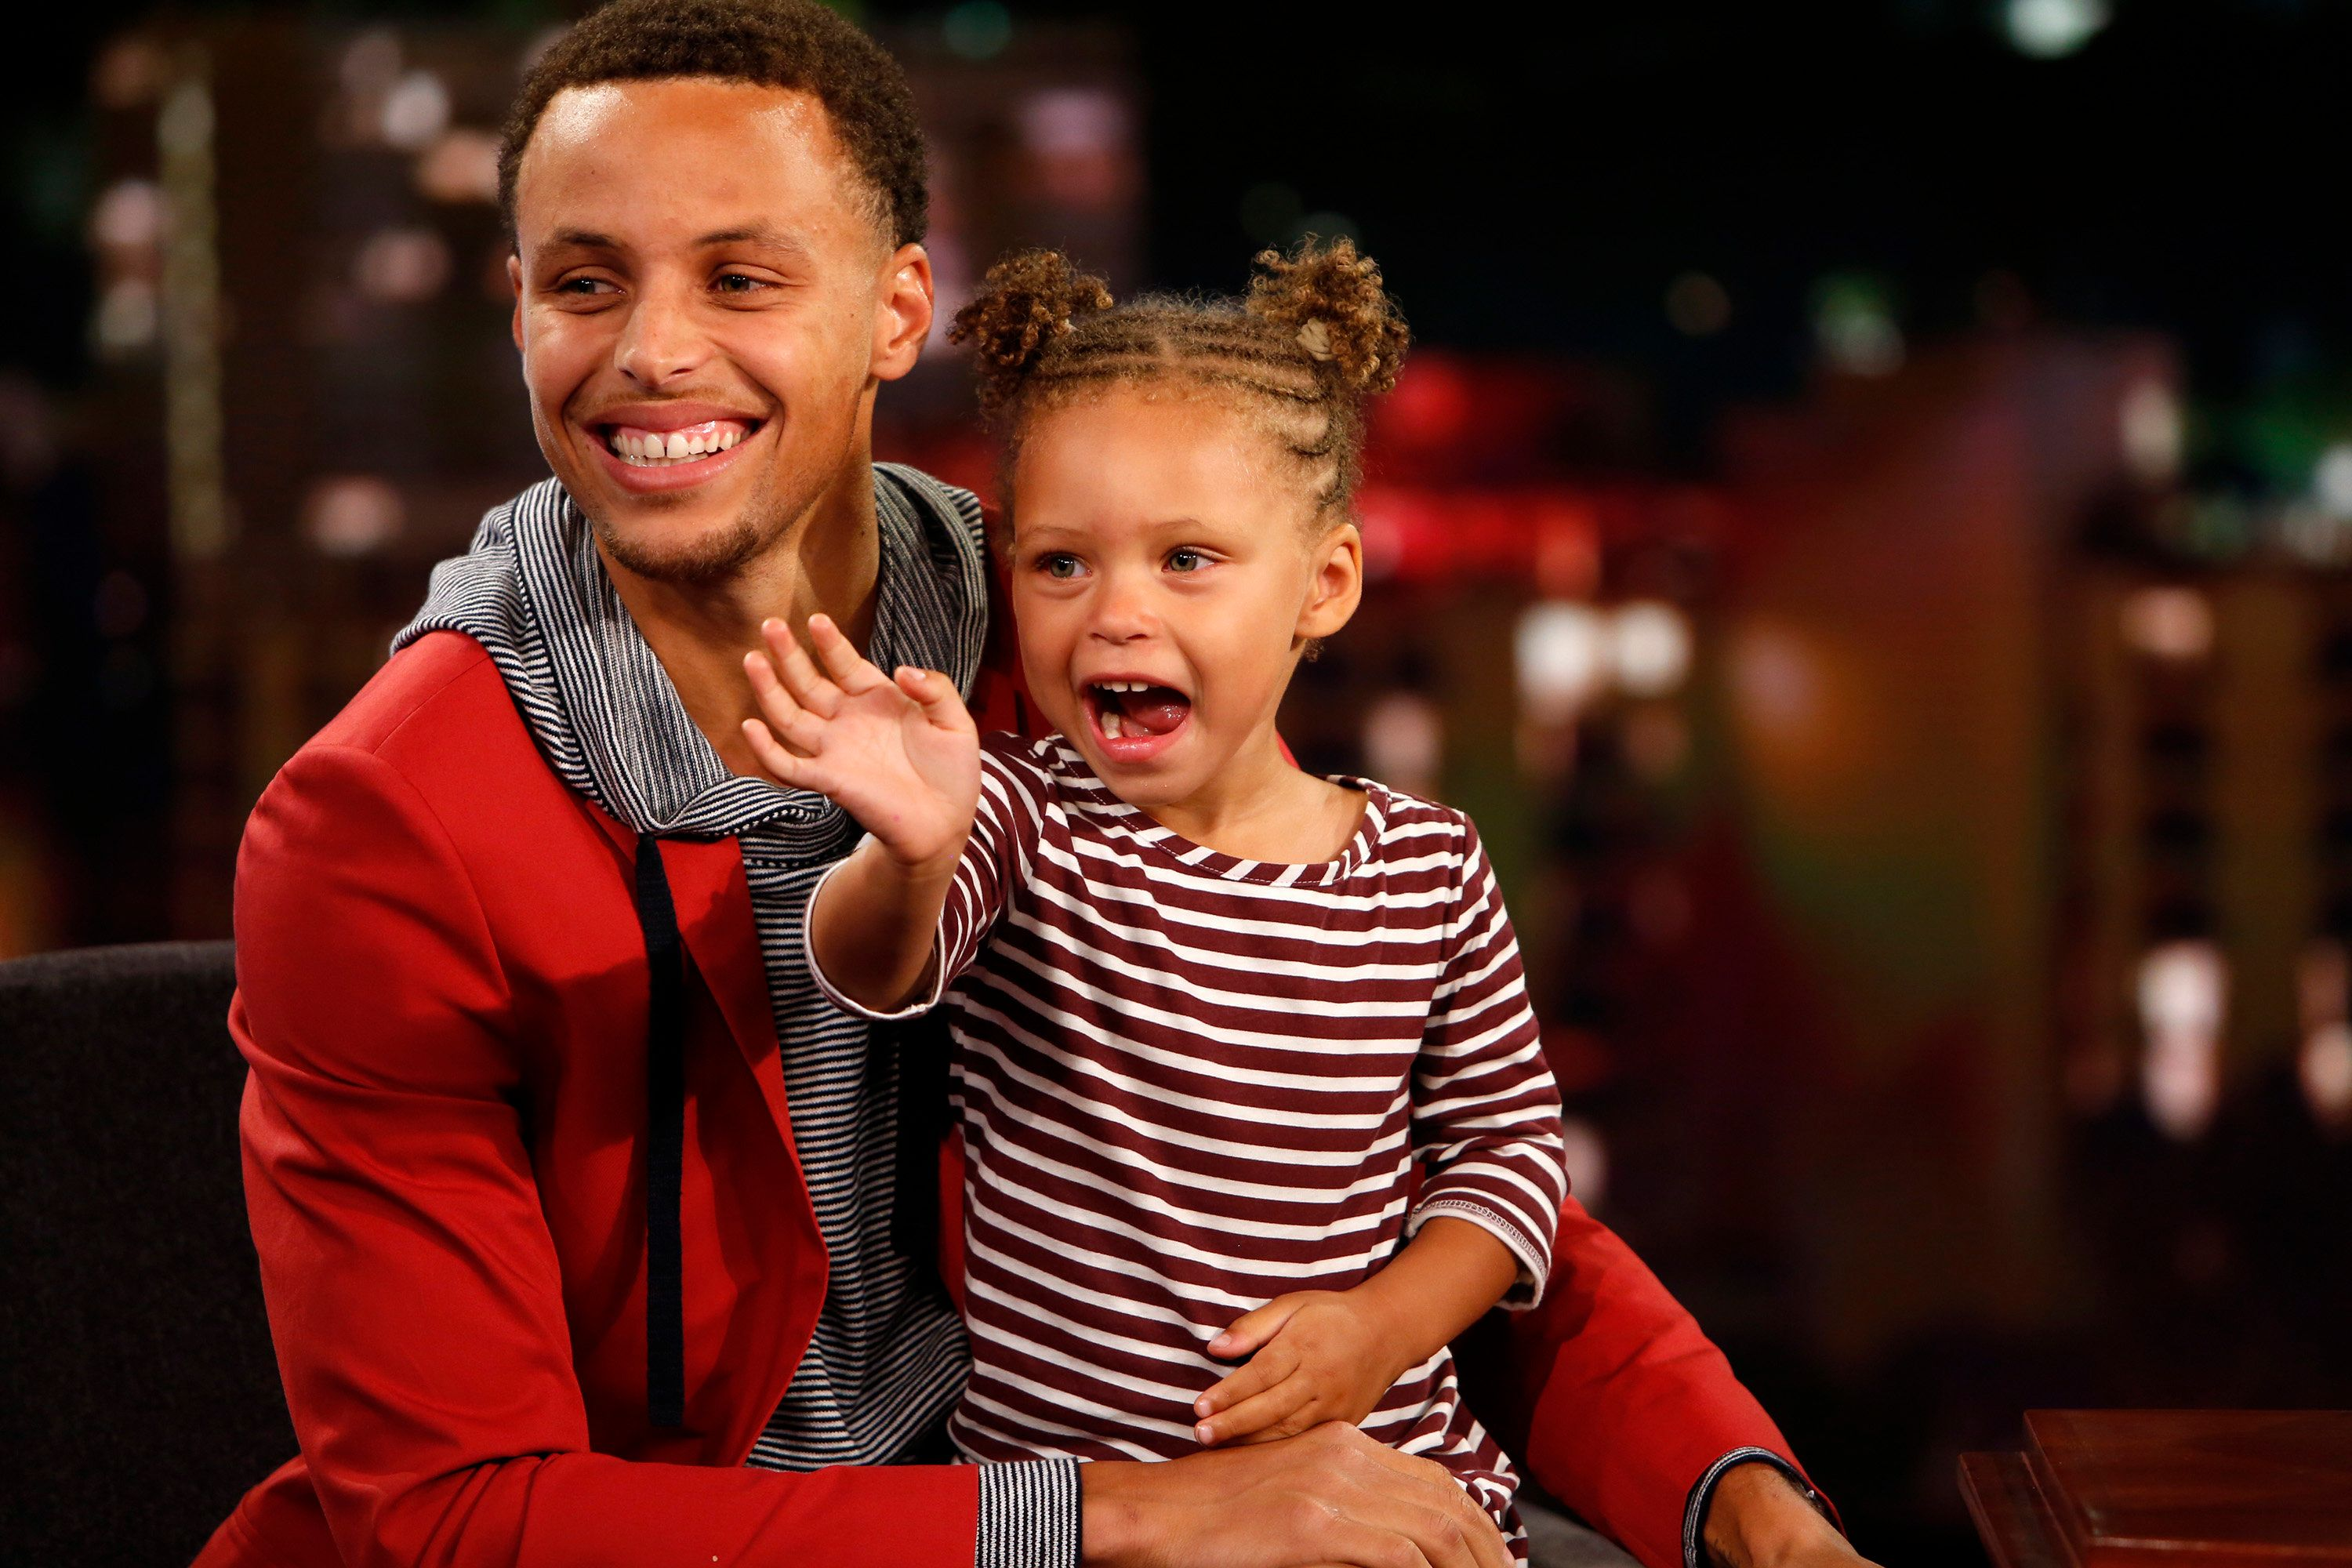 Steph Curry's parenting moments frequently make headlines.